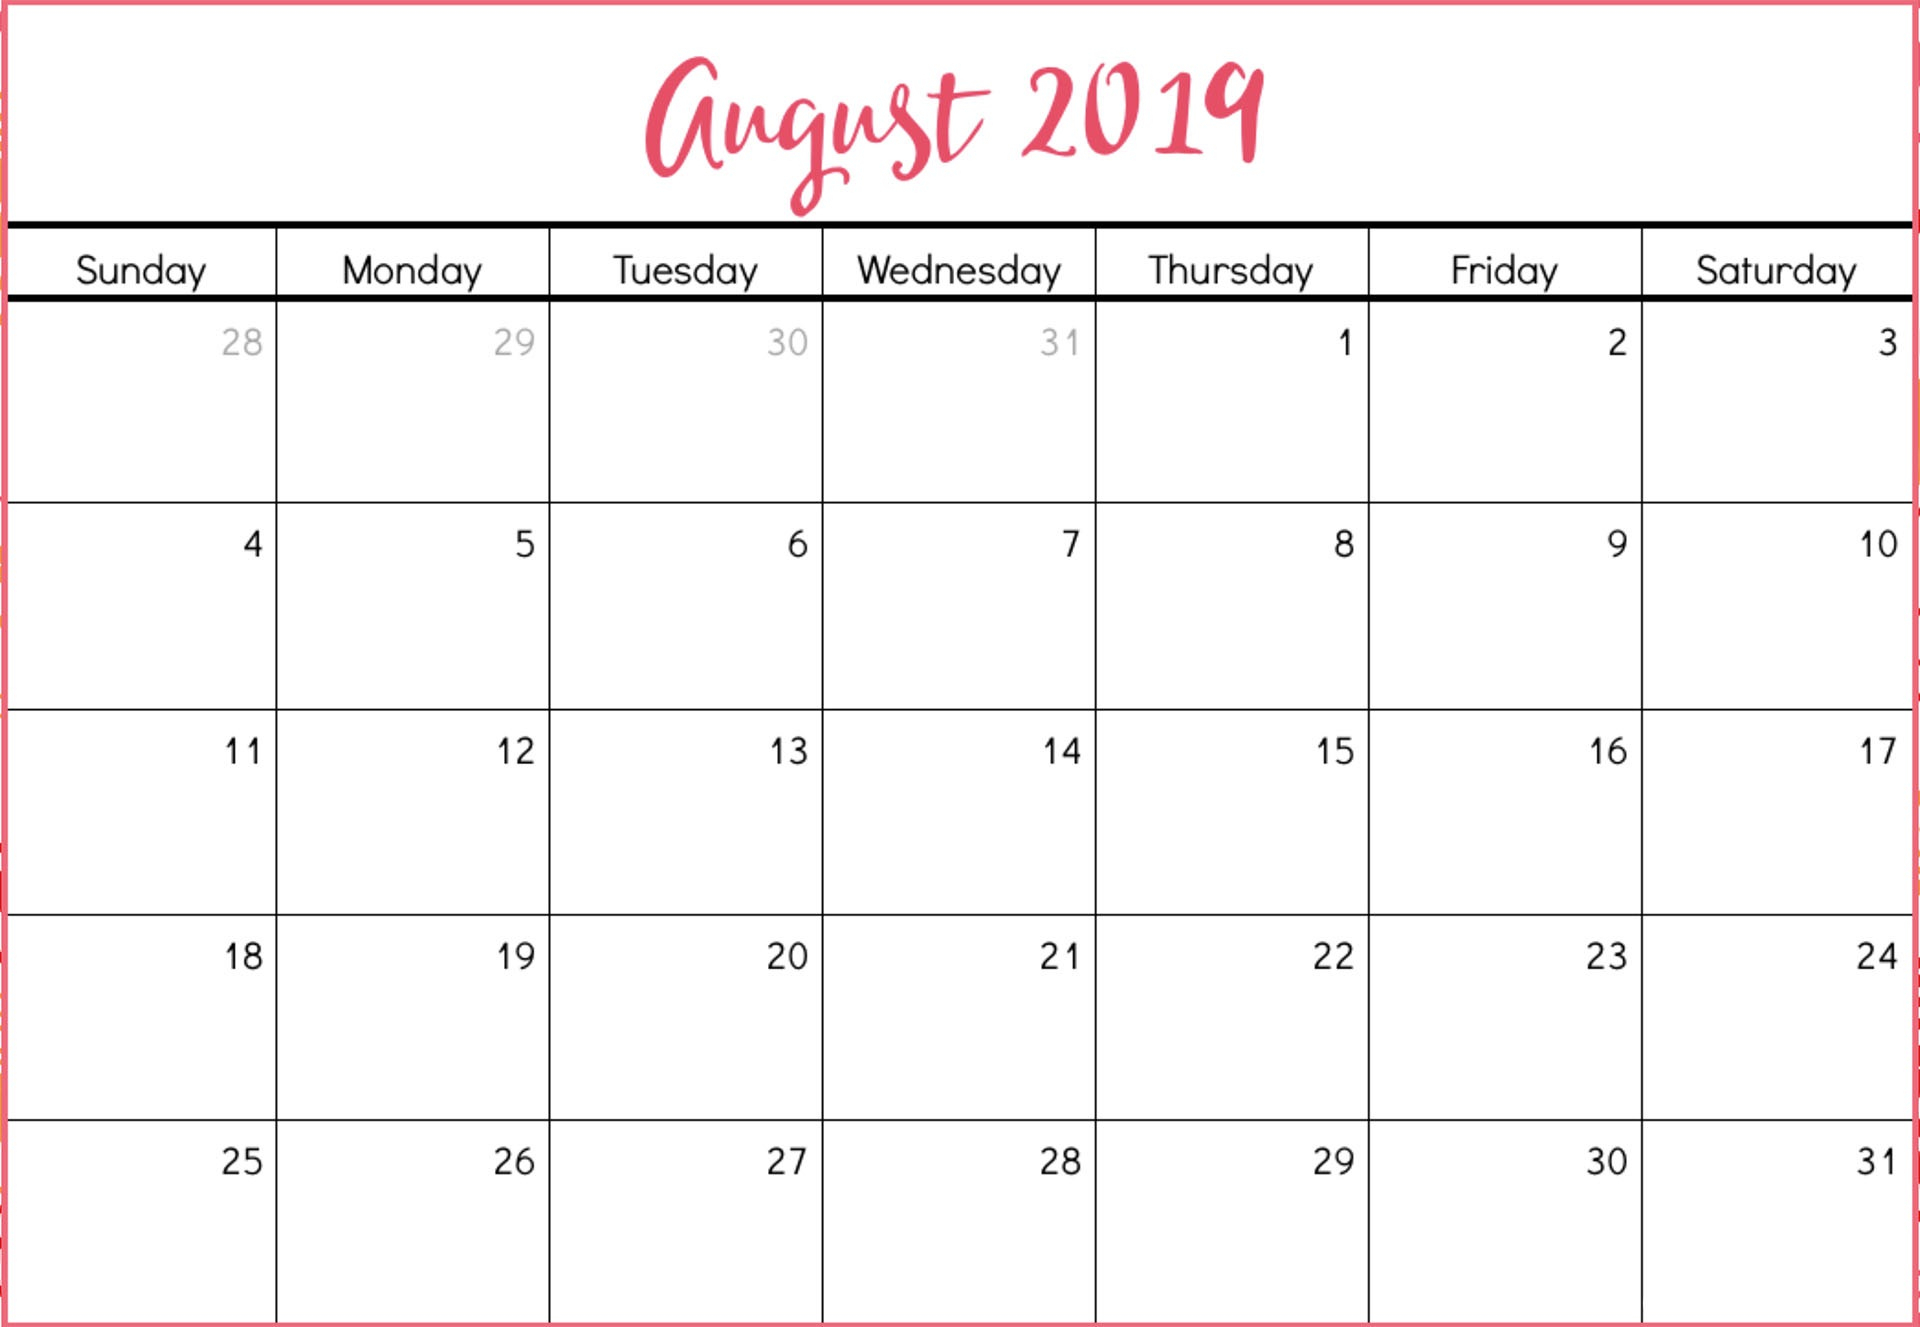 August 2019 Calendar Monthly Organizer - Free Printable